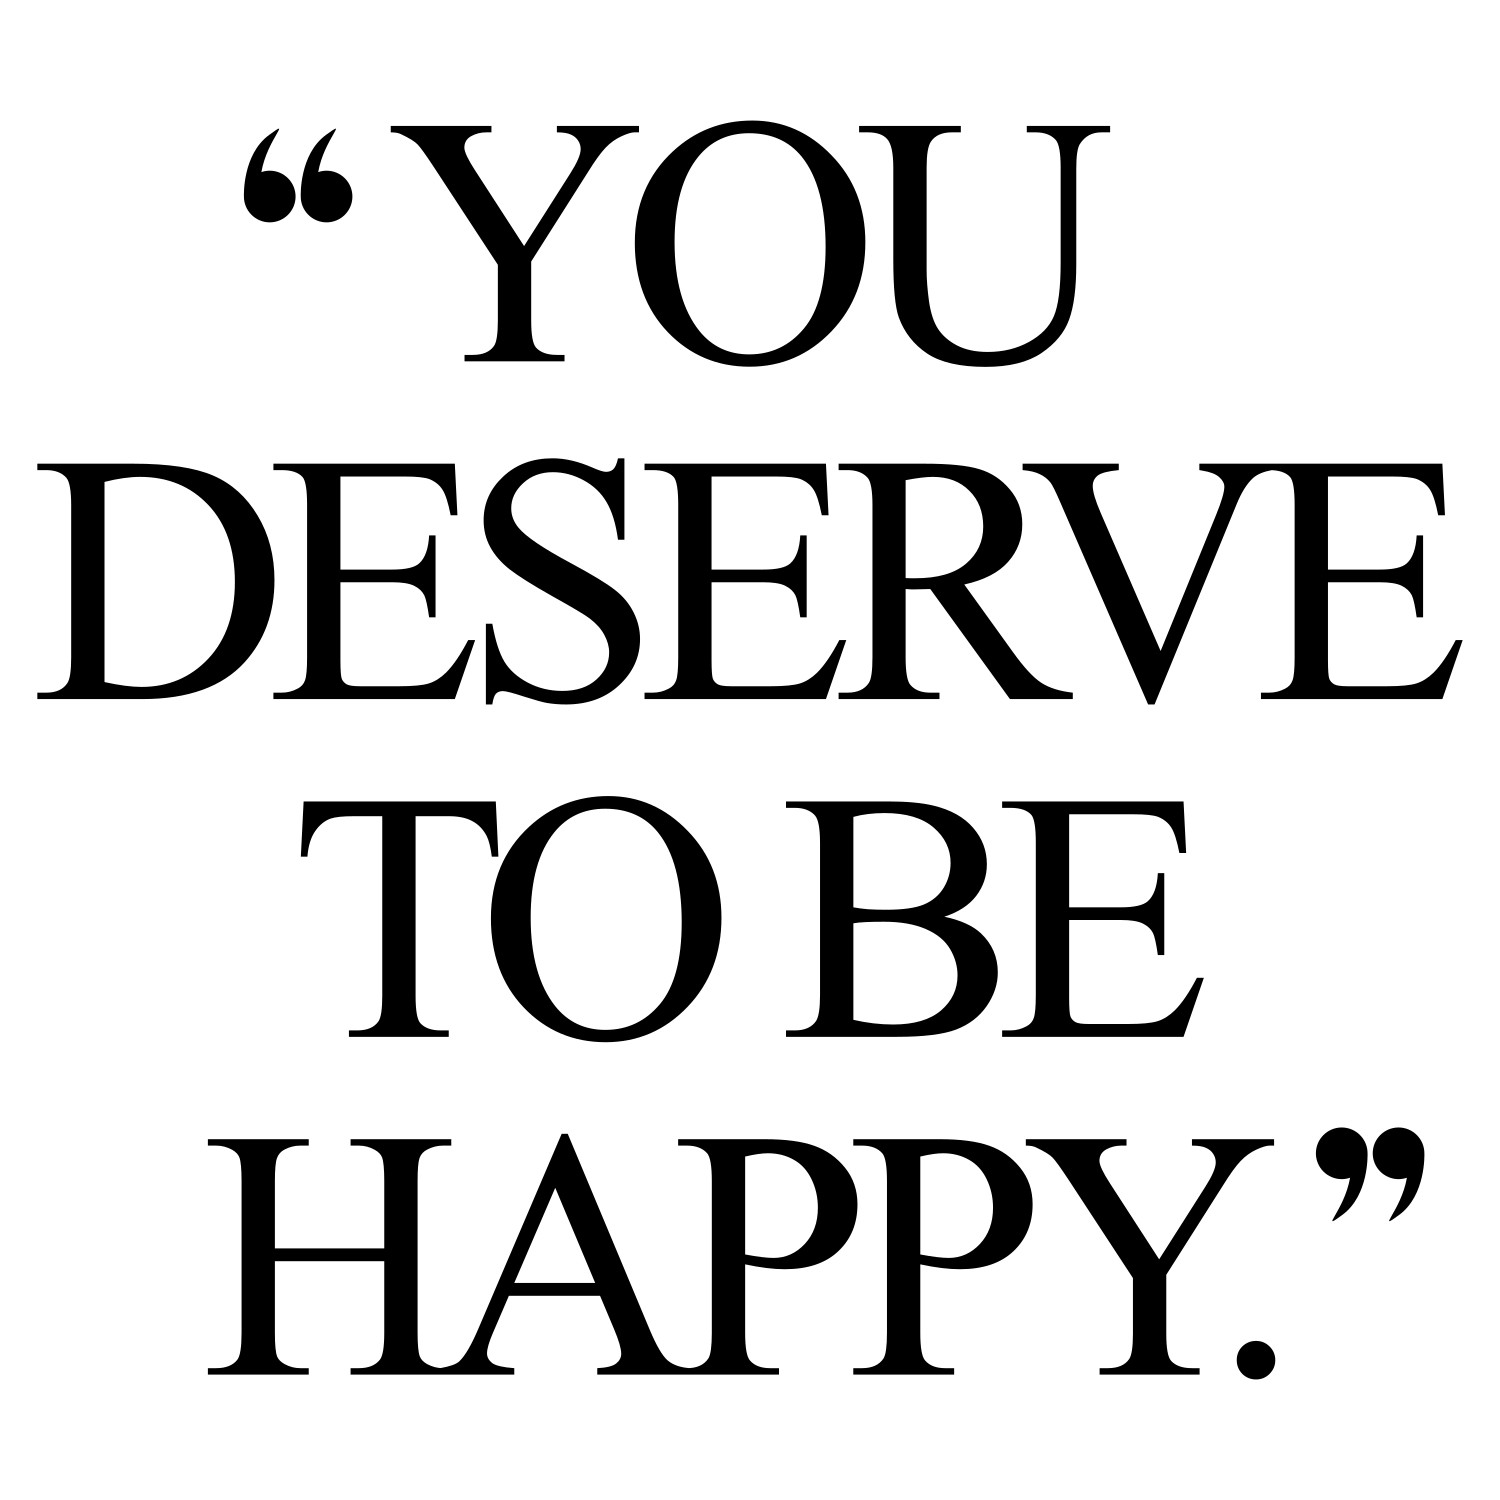 You Deserve To Be Happy Exercise And Weight Loss Motivation Quote